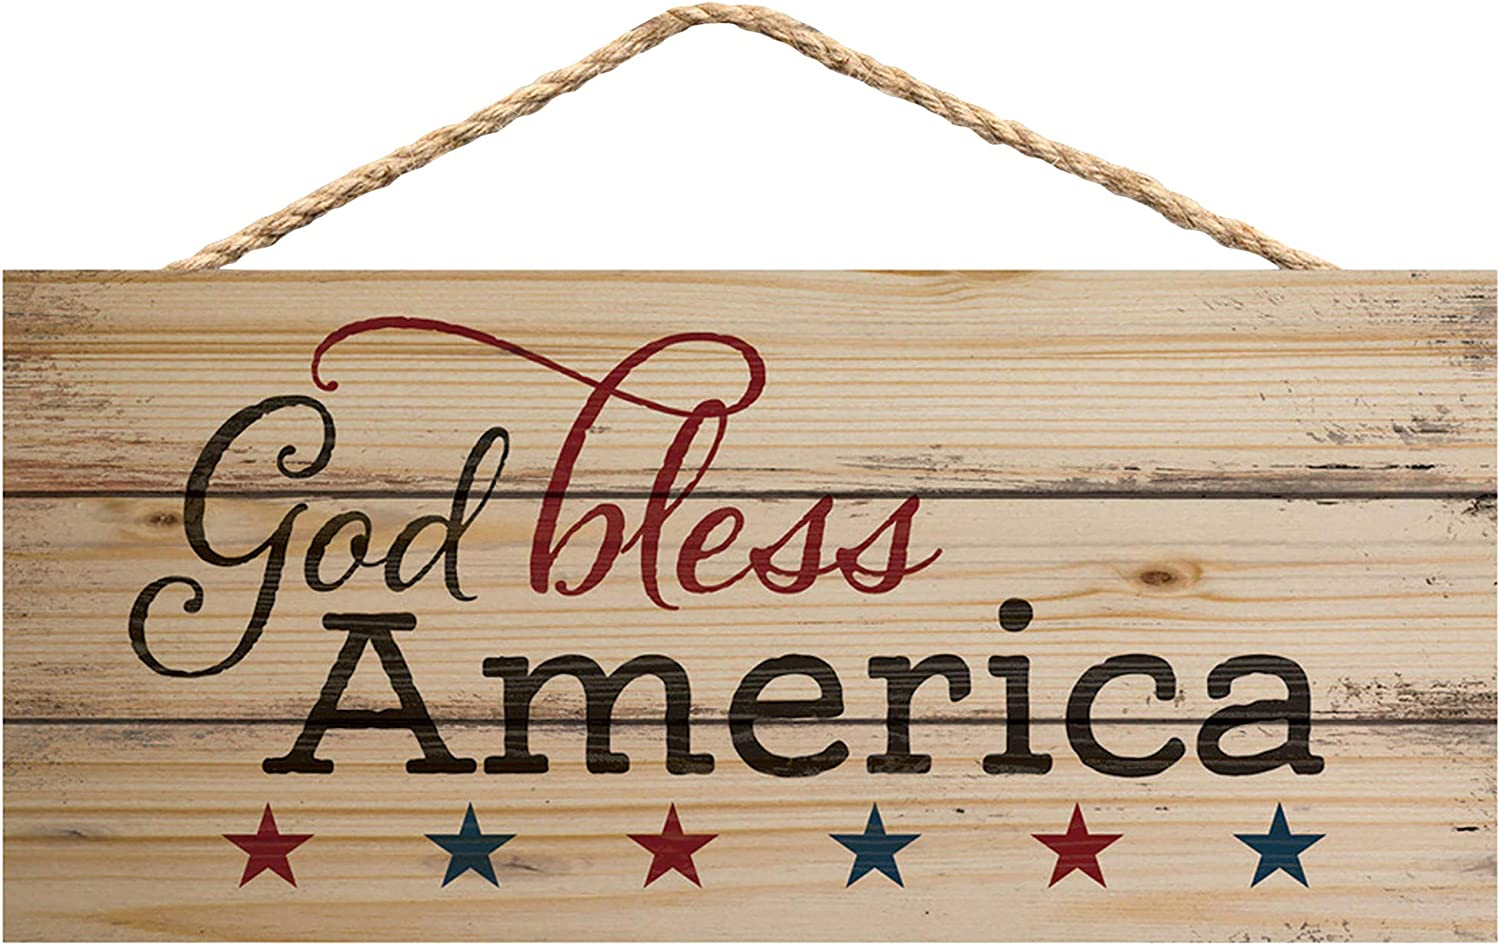 P. Graham Dunn God Bless America Patriotic Natural 10 x 4.5 Wood Wall Hanging Plaque Sign